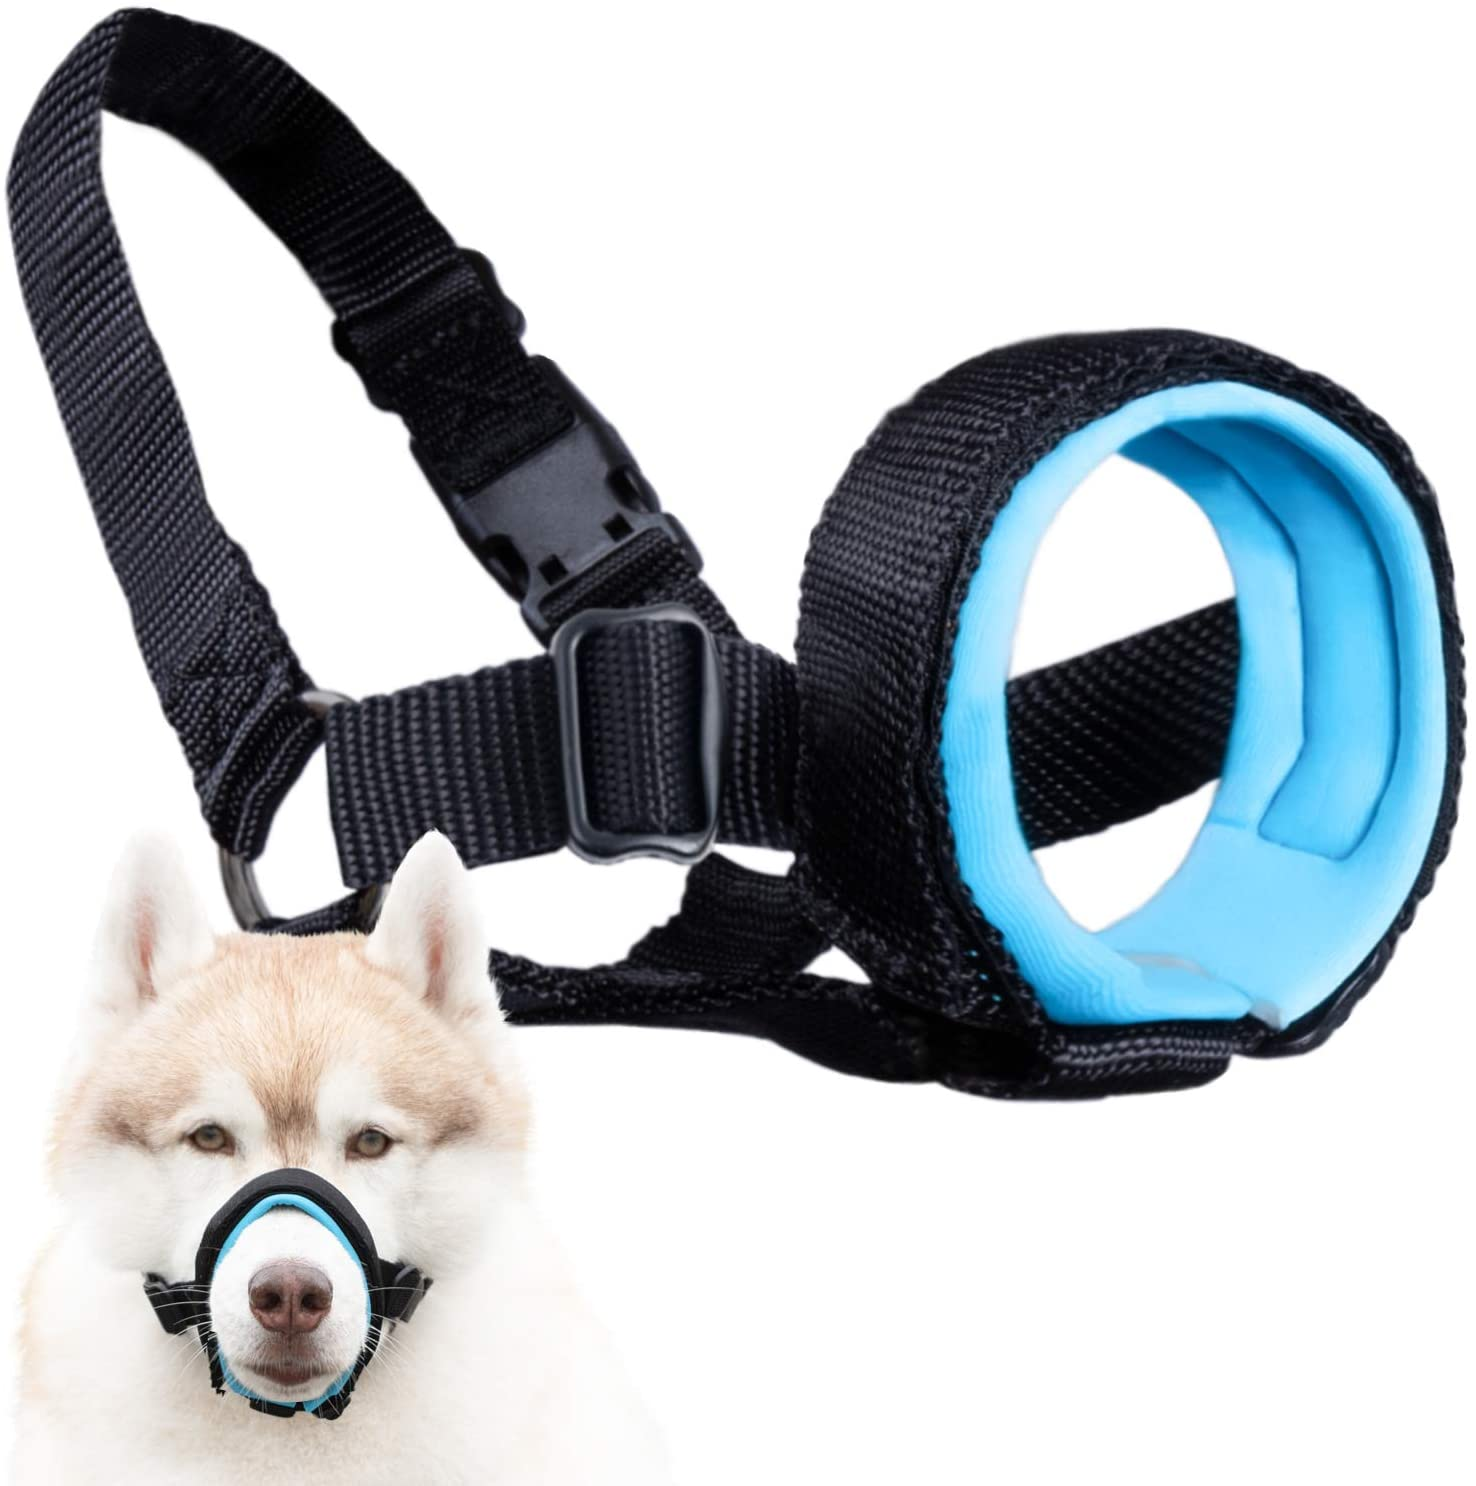 Soft and Adjustable Muzzle Guard for Dogs - Small Medium or Large Pets - Prevents Unwanted Barking Biting & Chewing - Adjustable Mouth Cover & Neck Strap - Secure Yet Comfortable Design - No Chafing